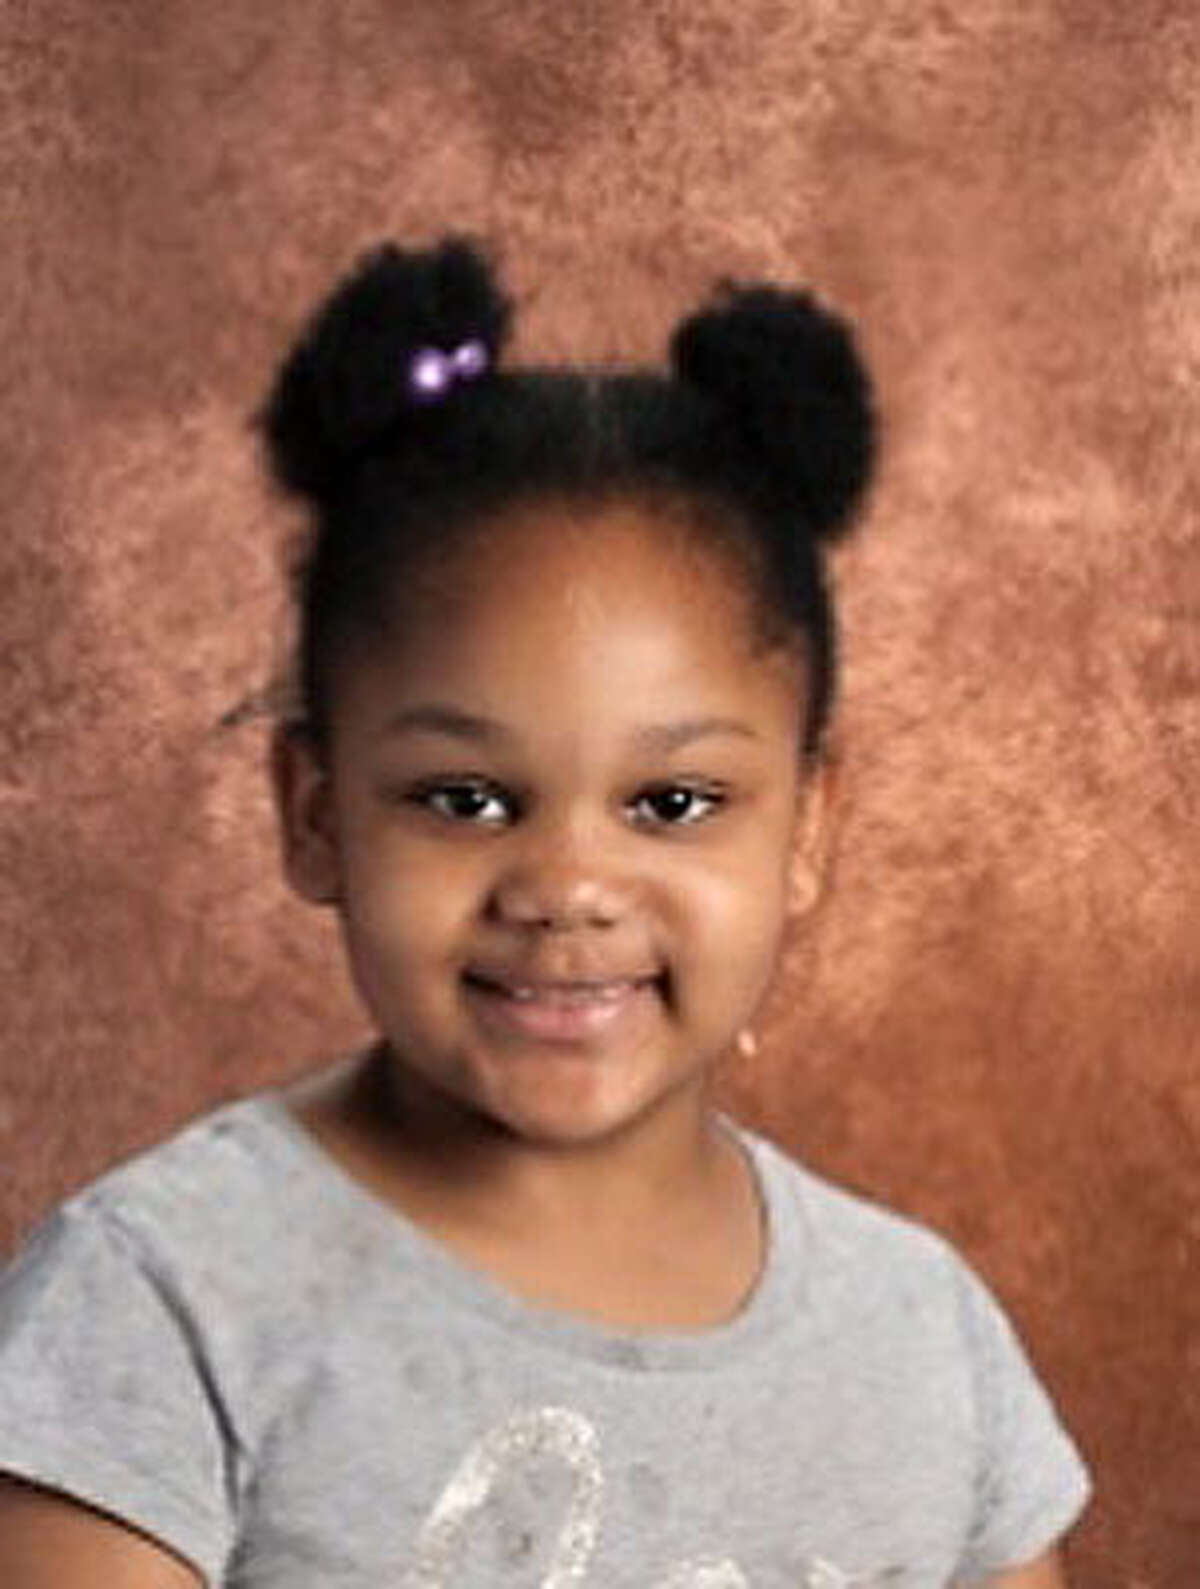 Shanise Myers, 5, was a victim in the 158 Second Avenue homicide in Troy.